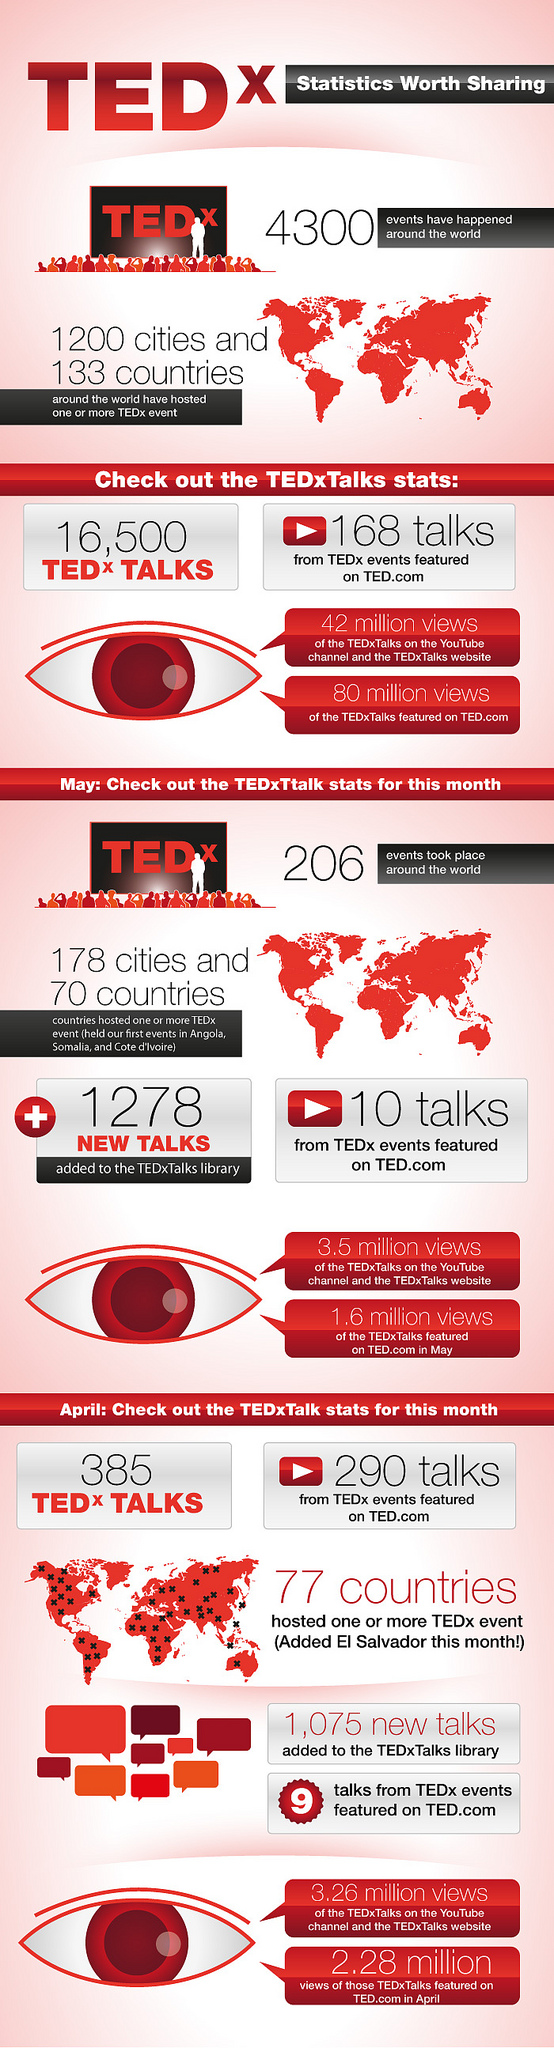 TEDx image with stats 2015